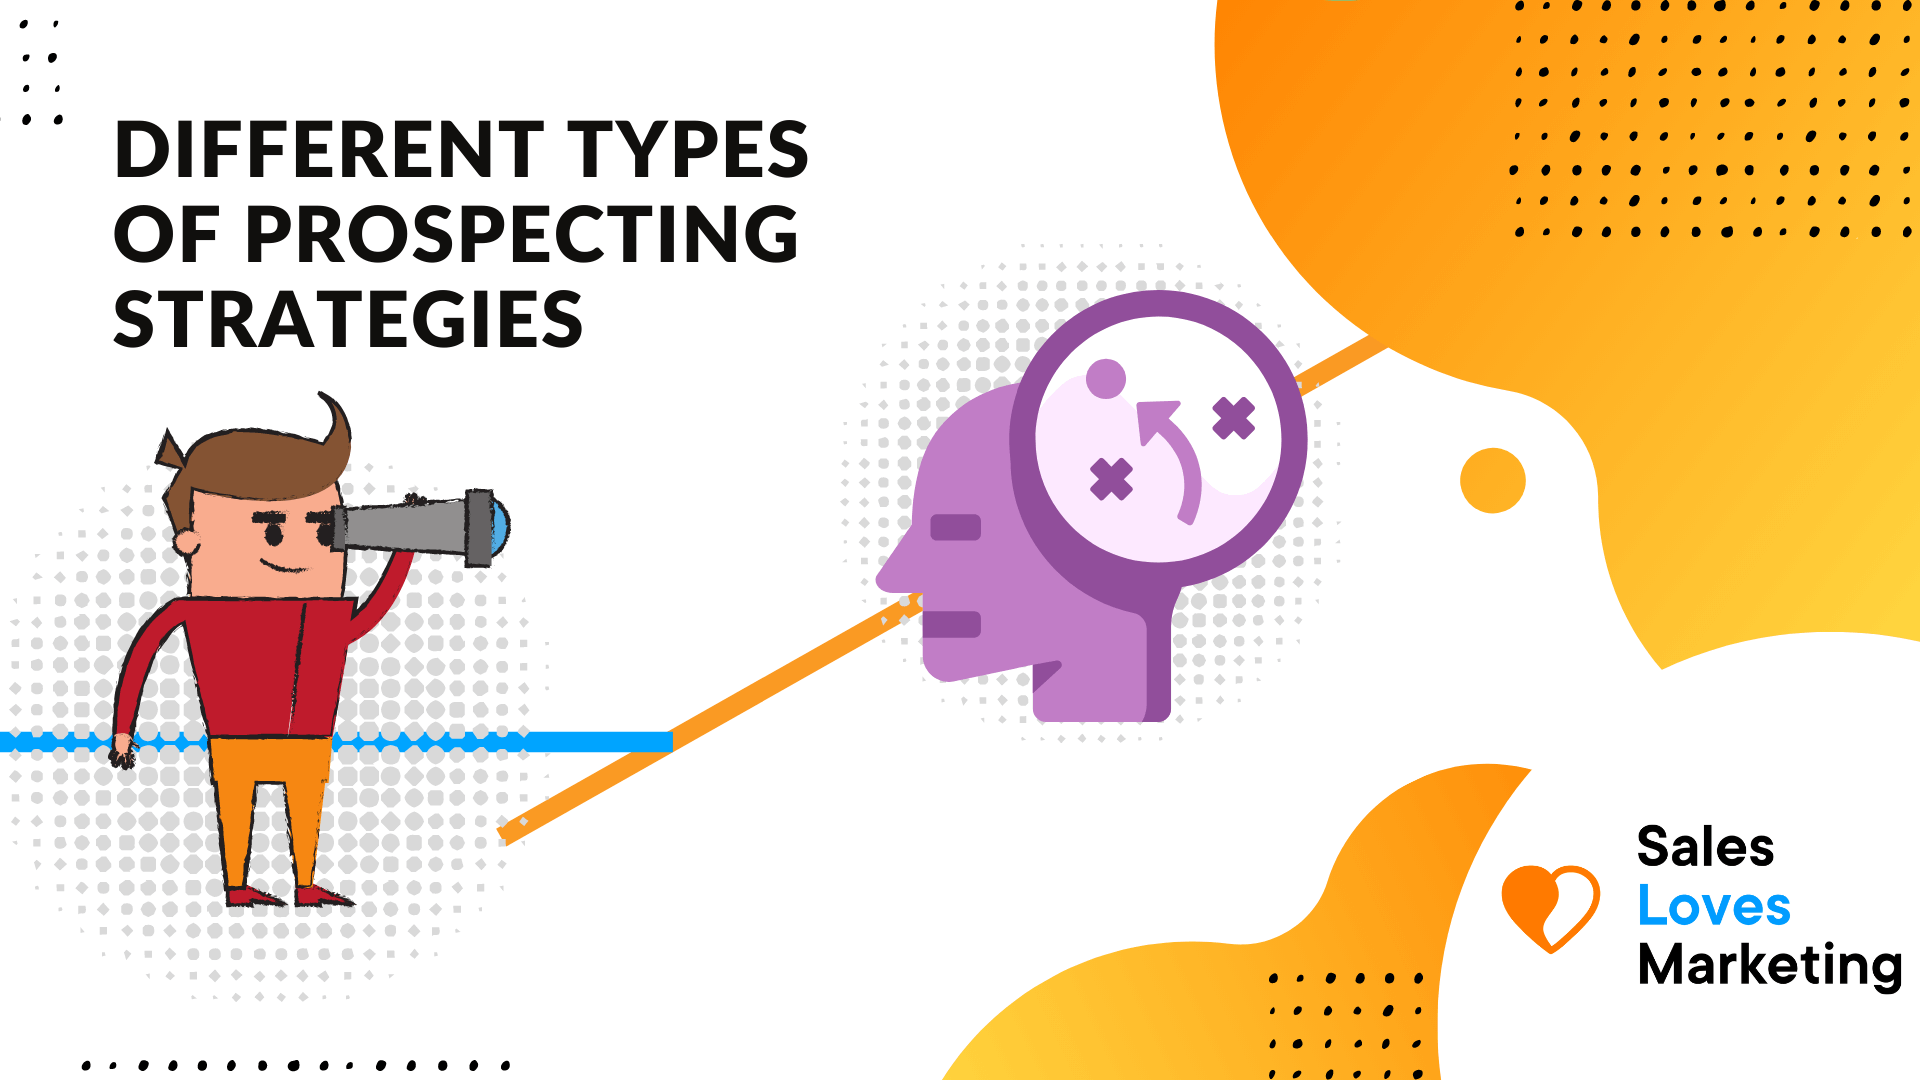 Different types or prospecting strategies